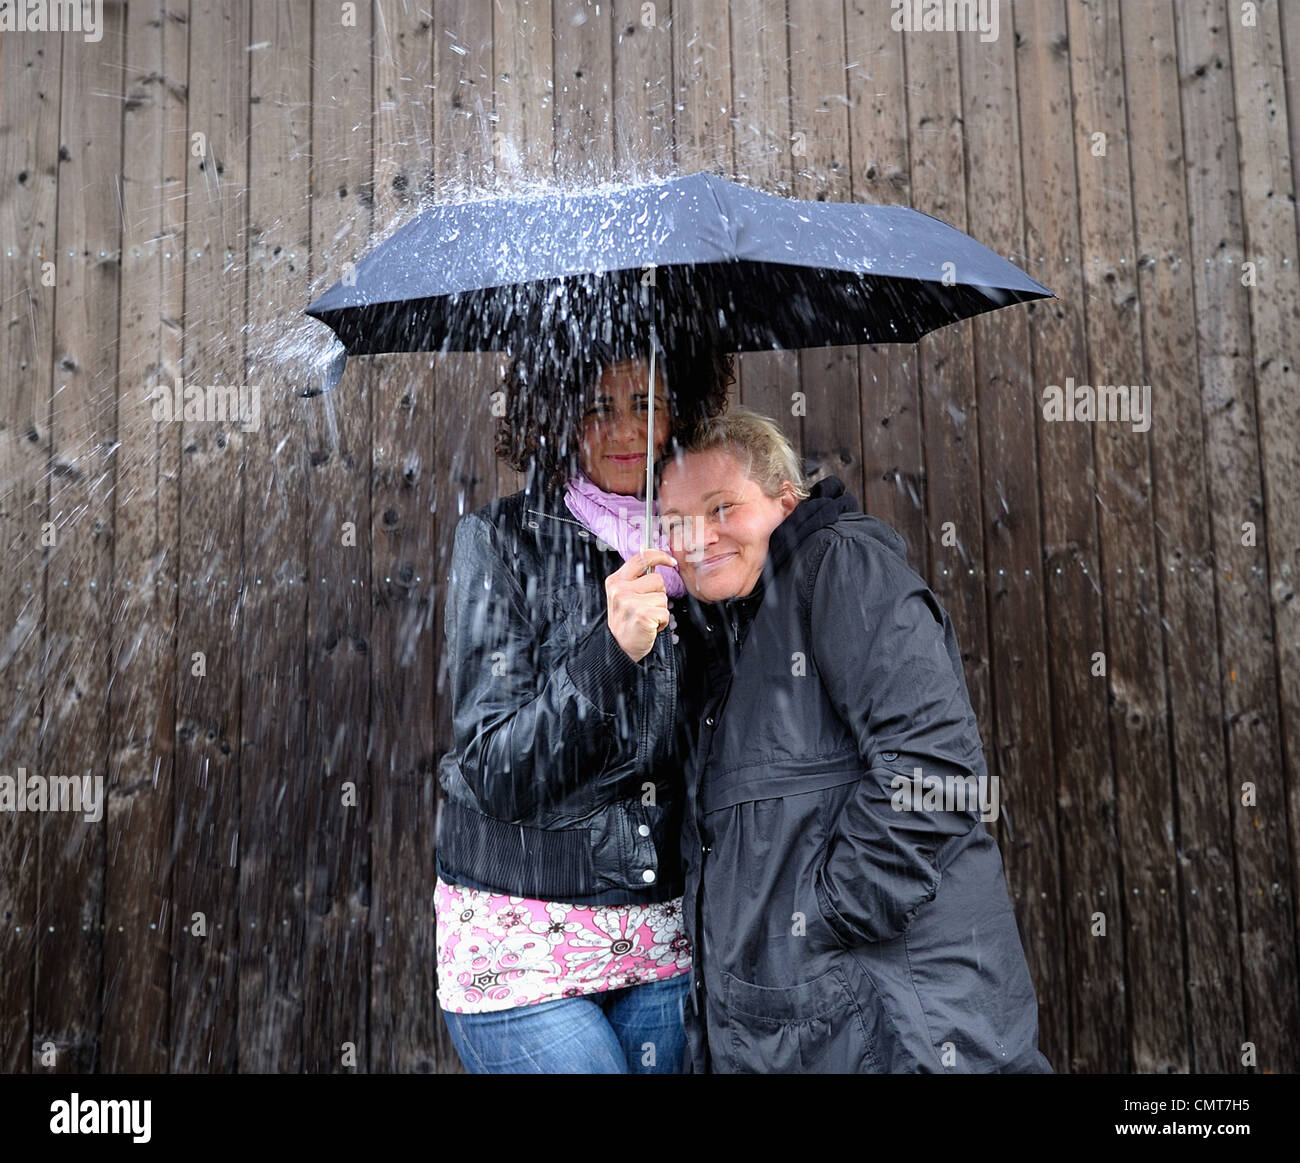 Two women under one umbrella - Stock Image